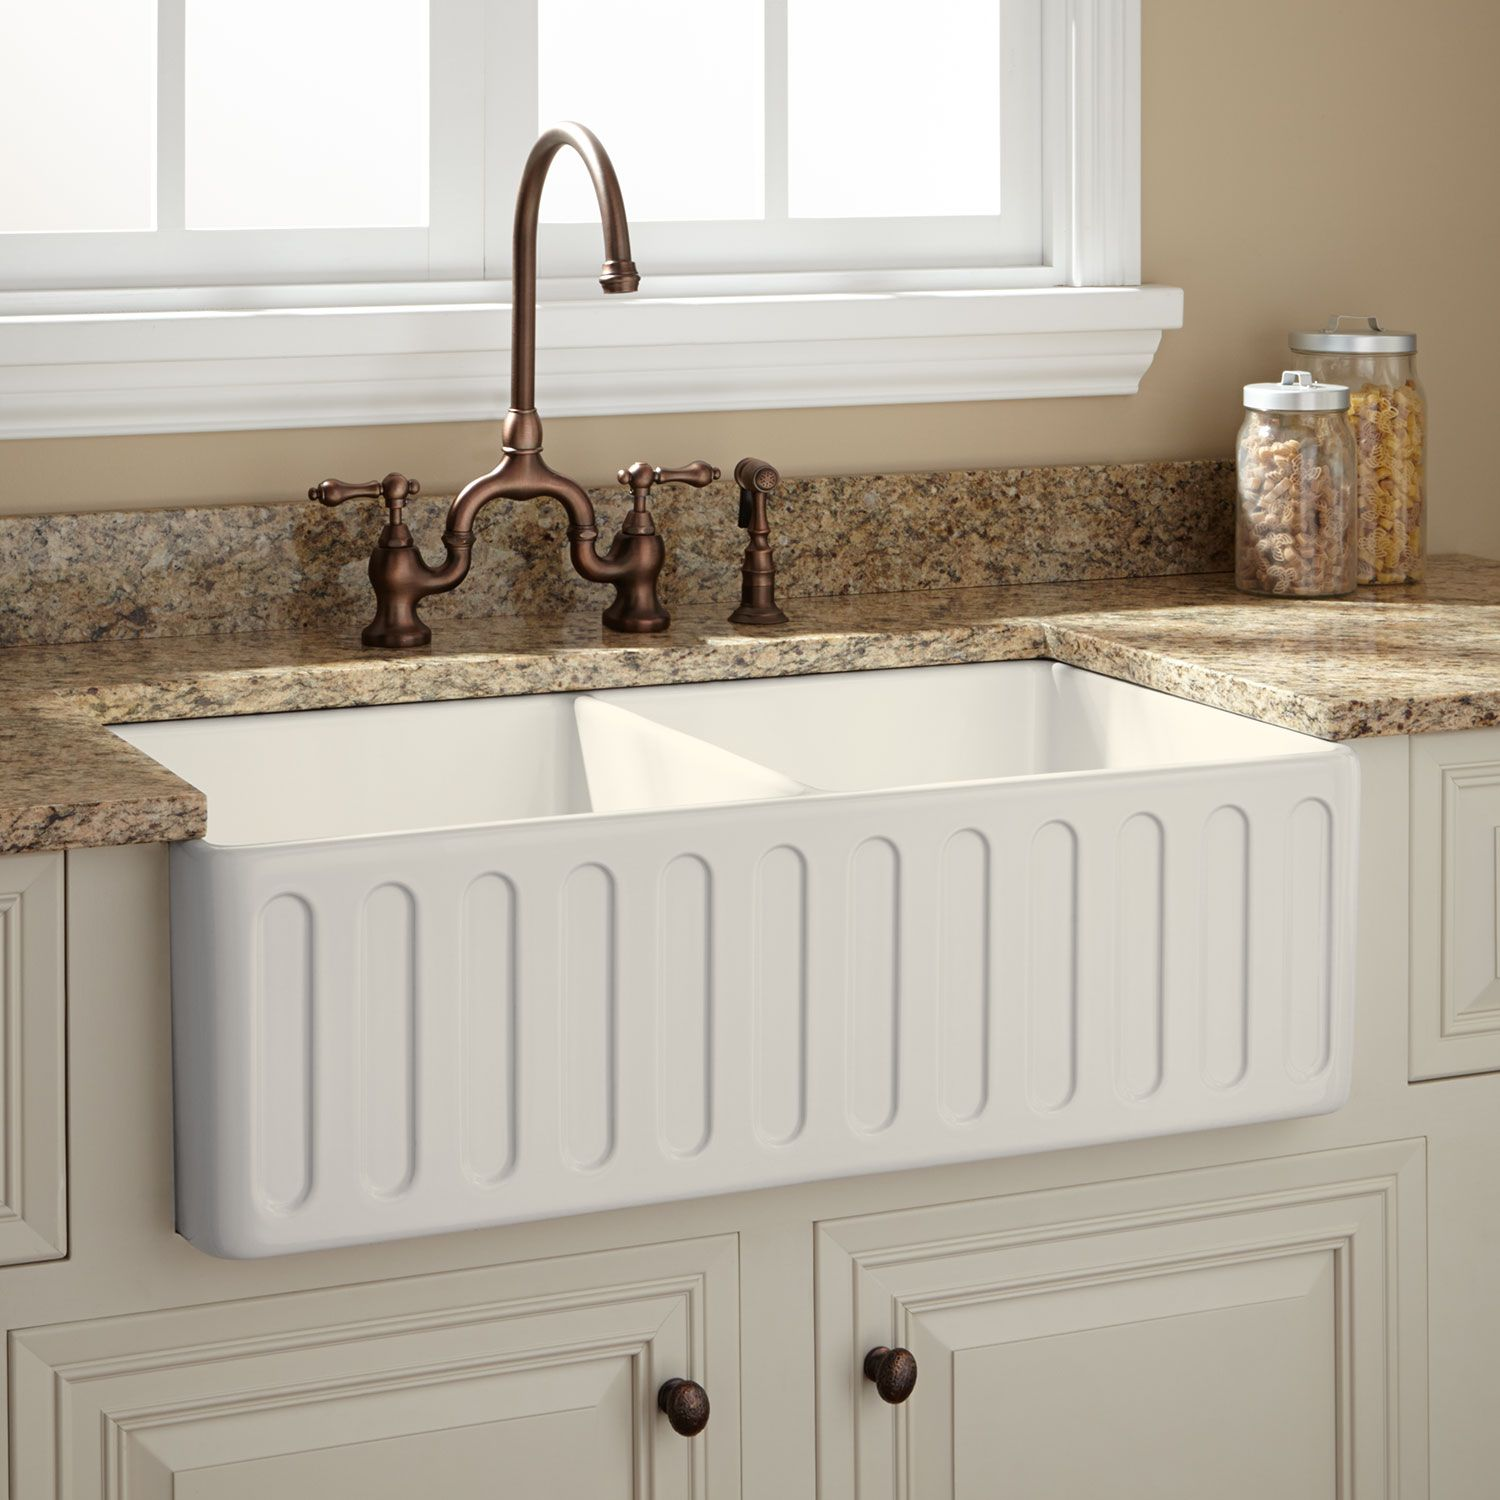 33 Northing Double Bowl Fireclay Farmhouse Sink In Biscuit